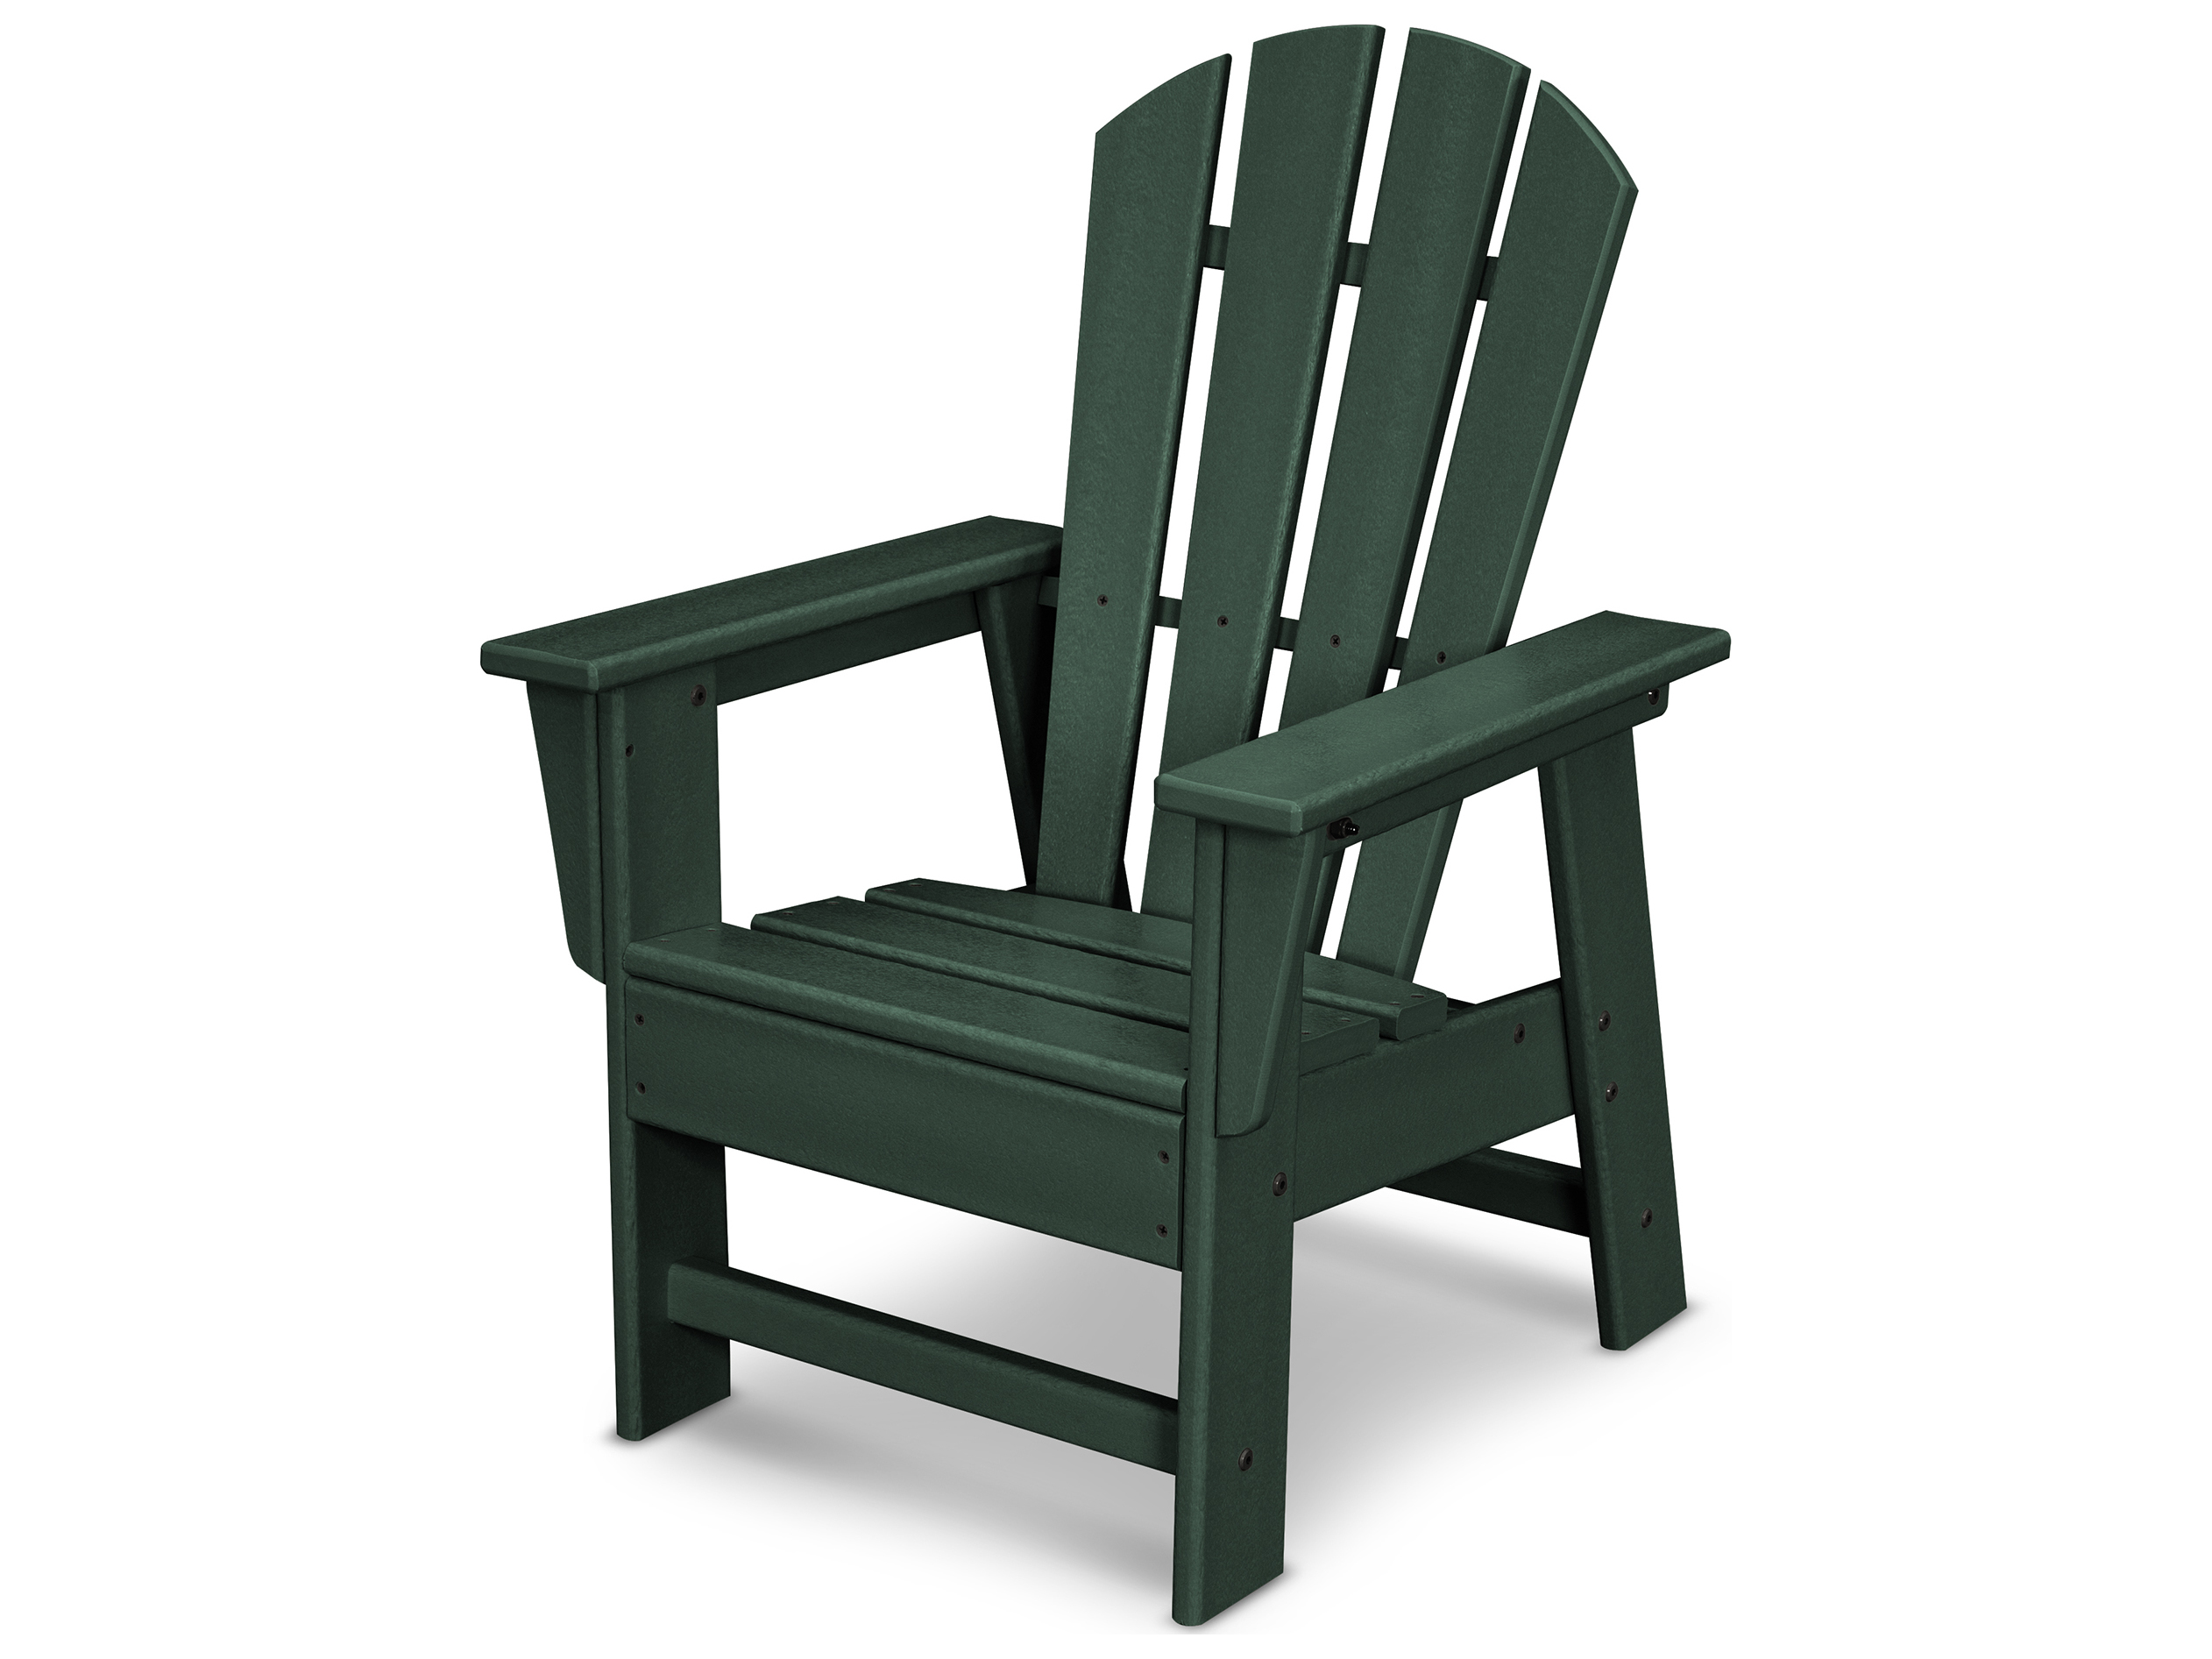 polywood adirondack chairs papasan chair frame diy south beach recycled plastic child size